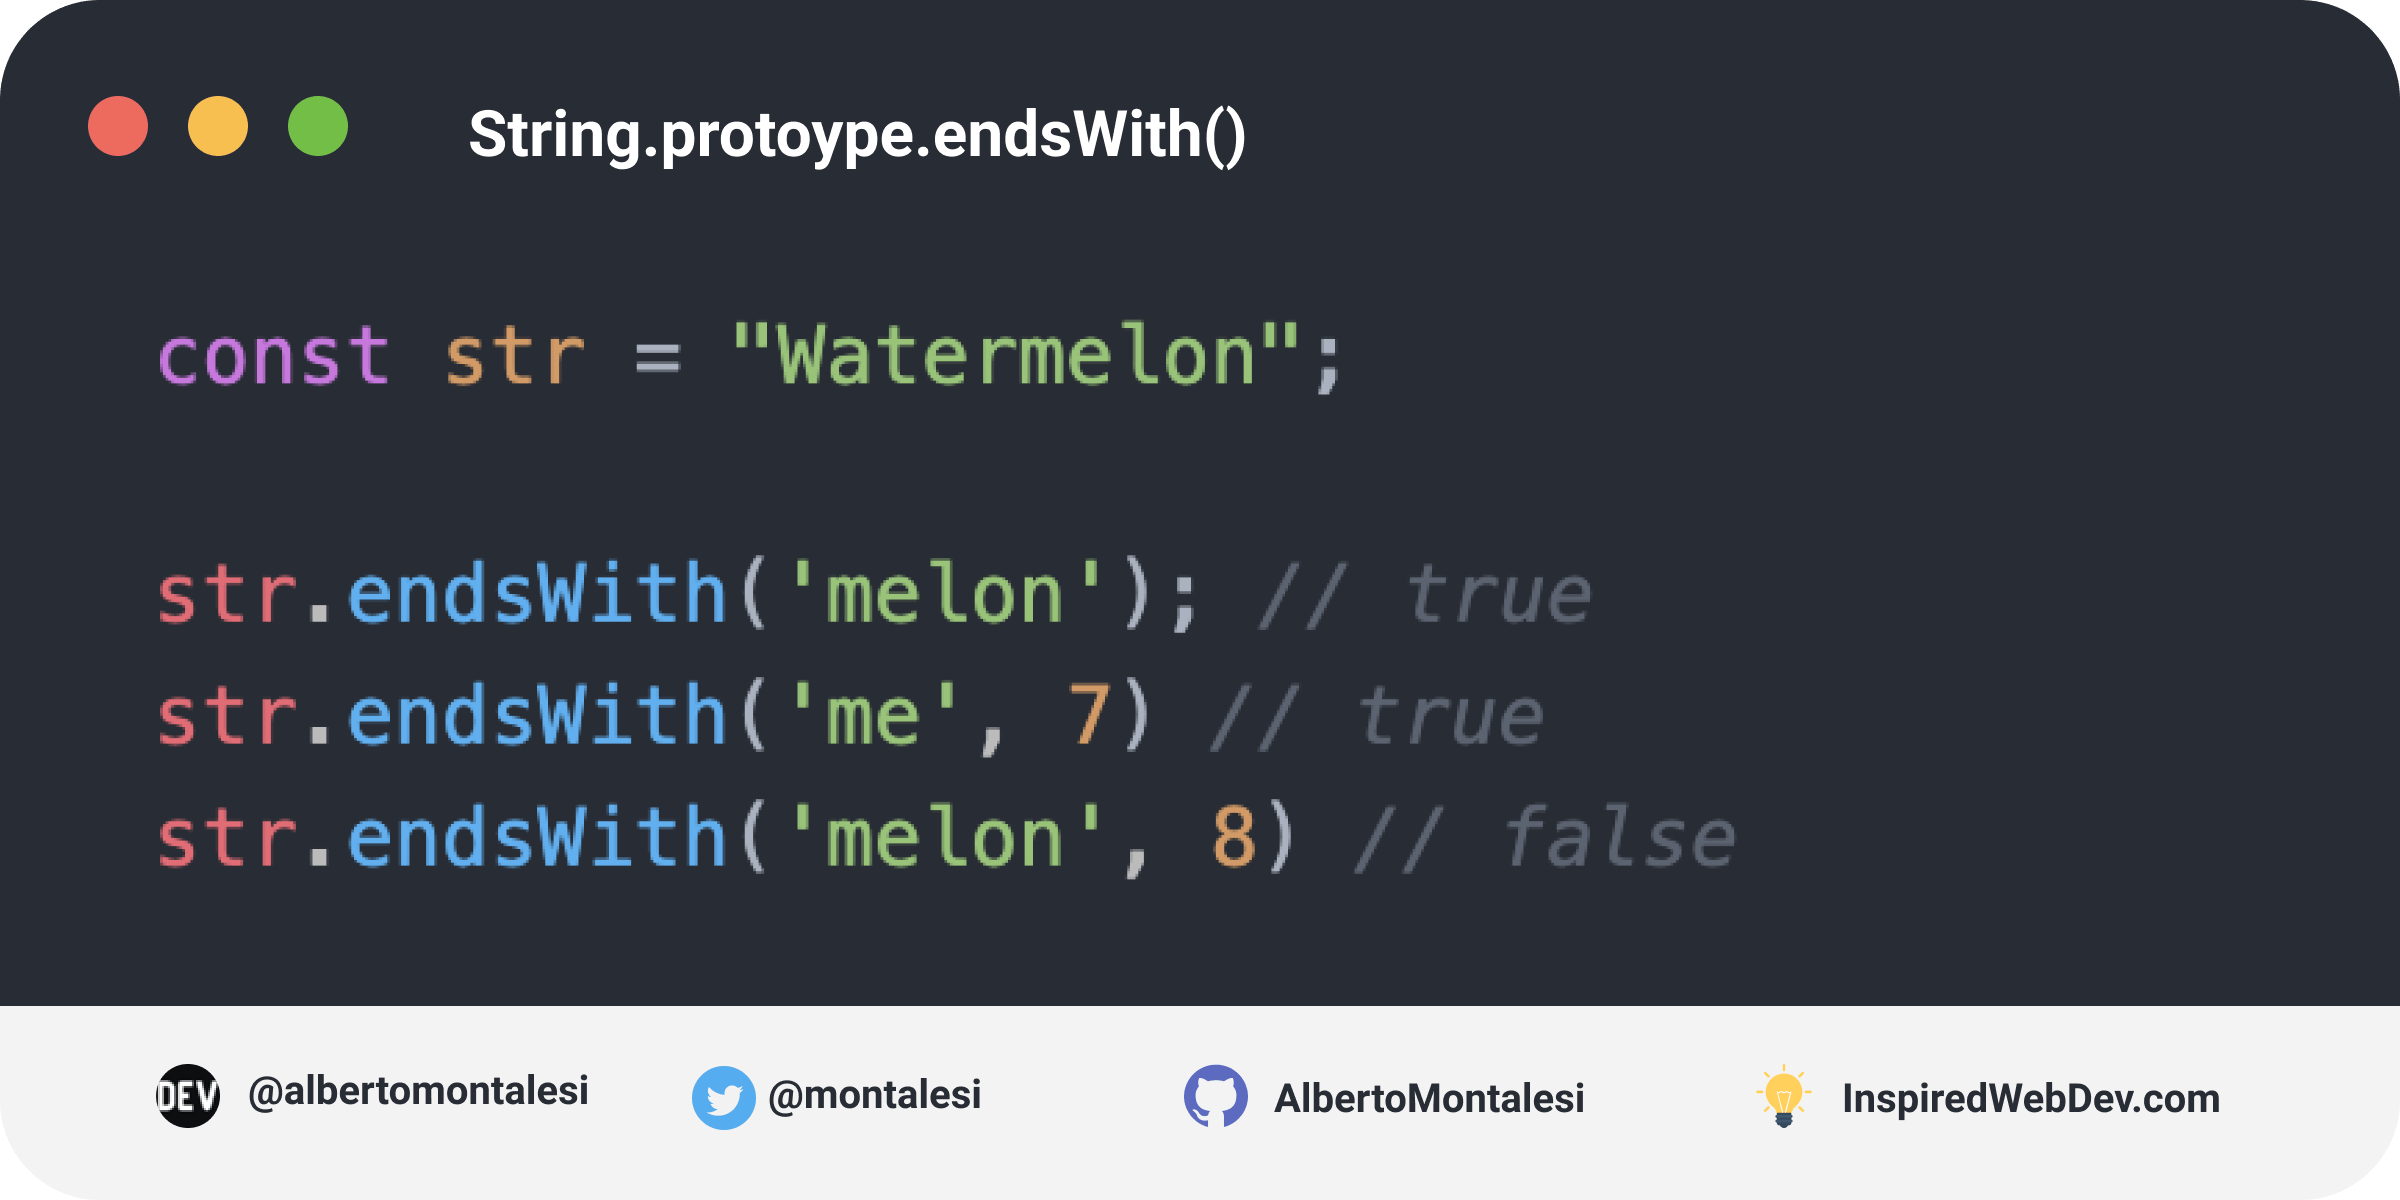 String.prototype.endsWith()